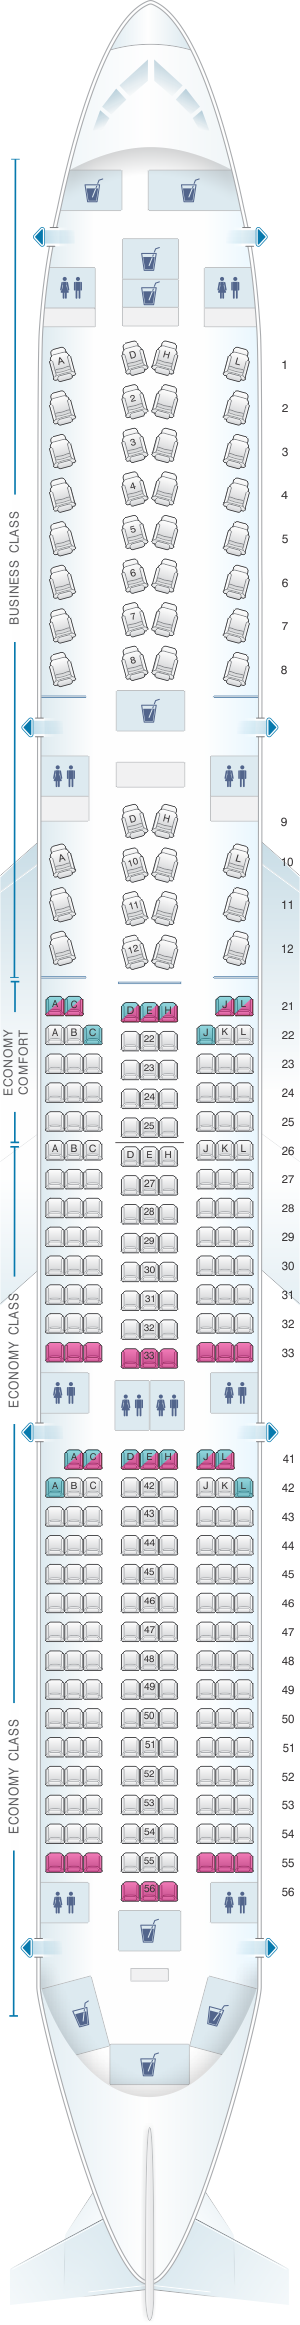 Seat map for Finnair Airbus A350 900 Config.1